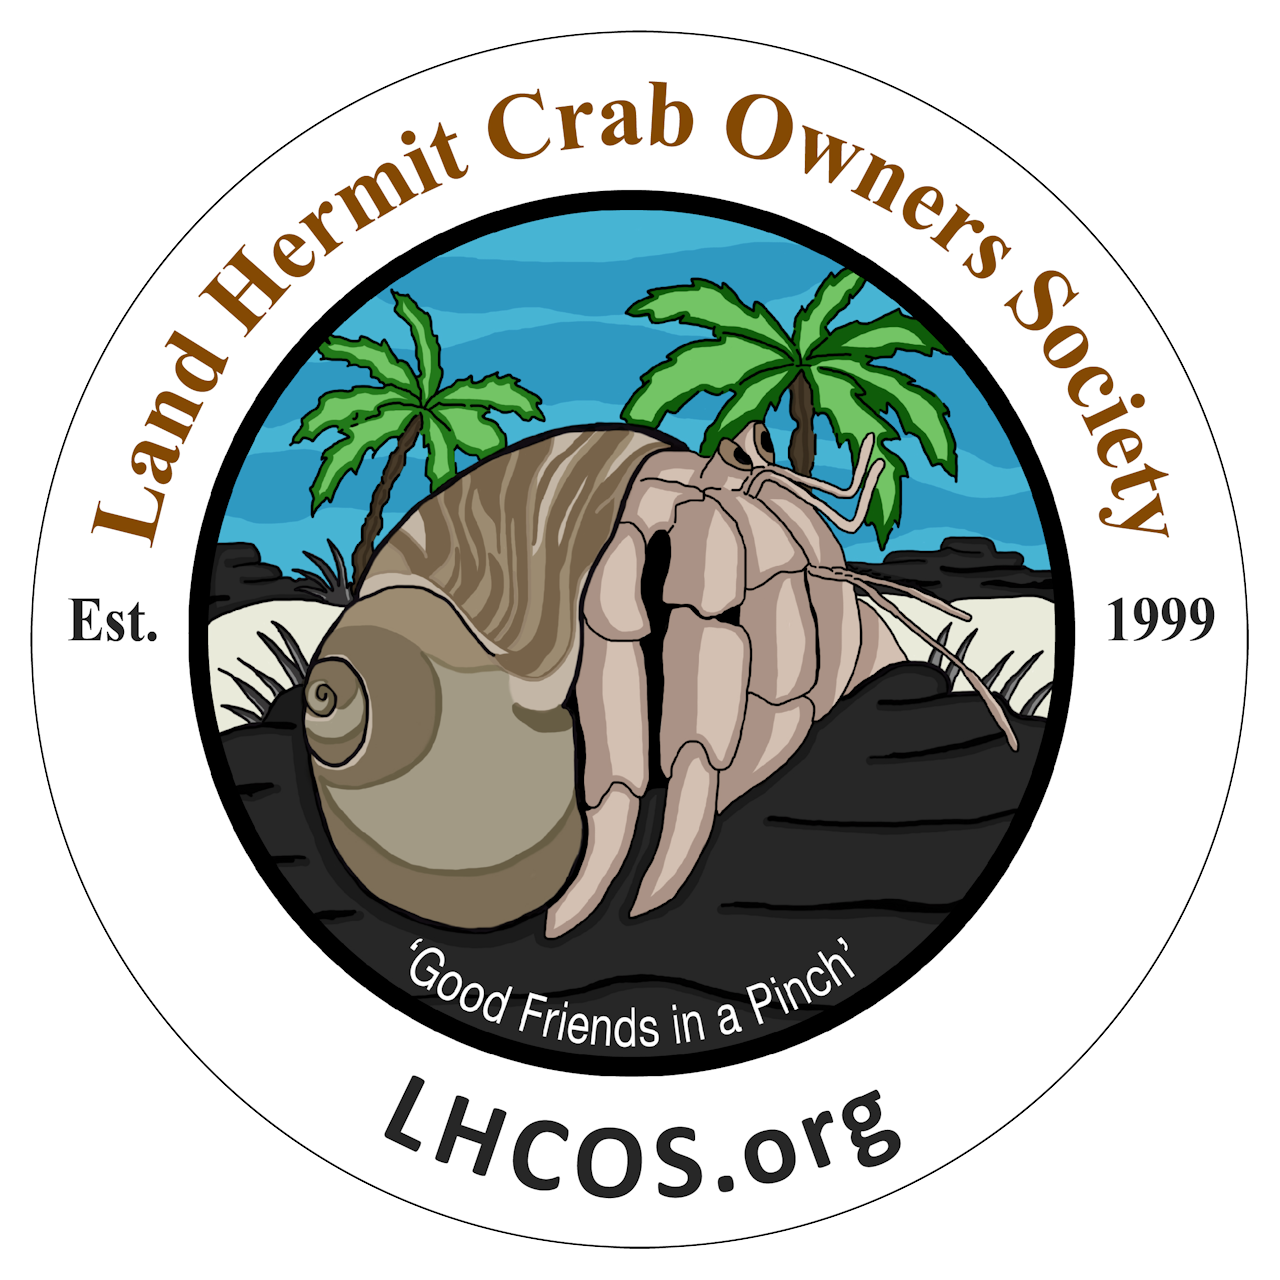 Land Hermit Crab Owners Society